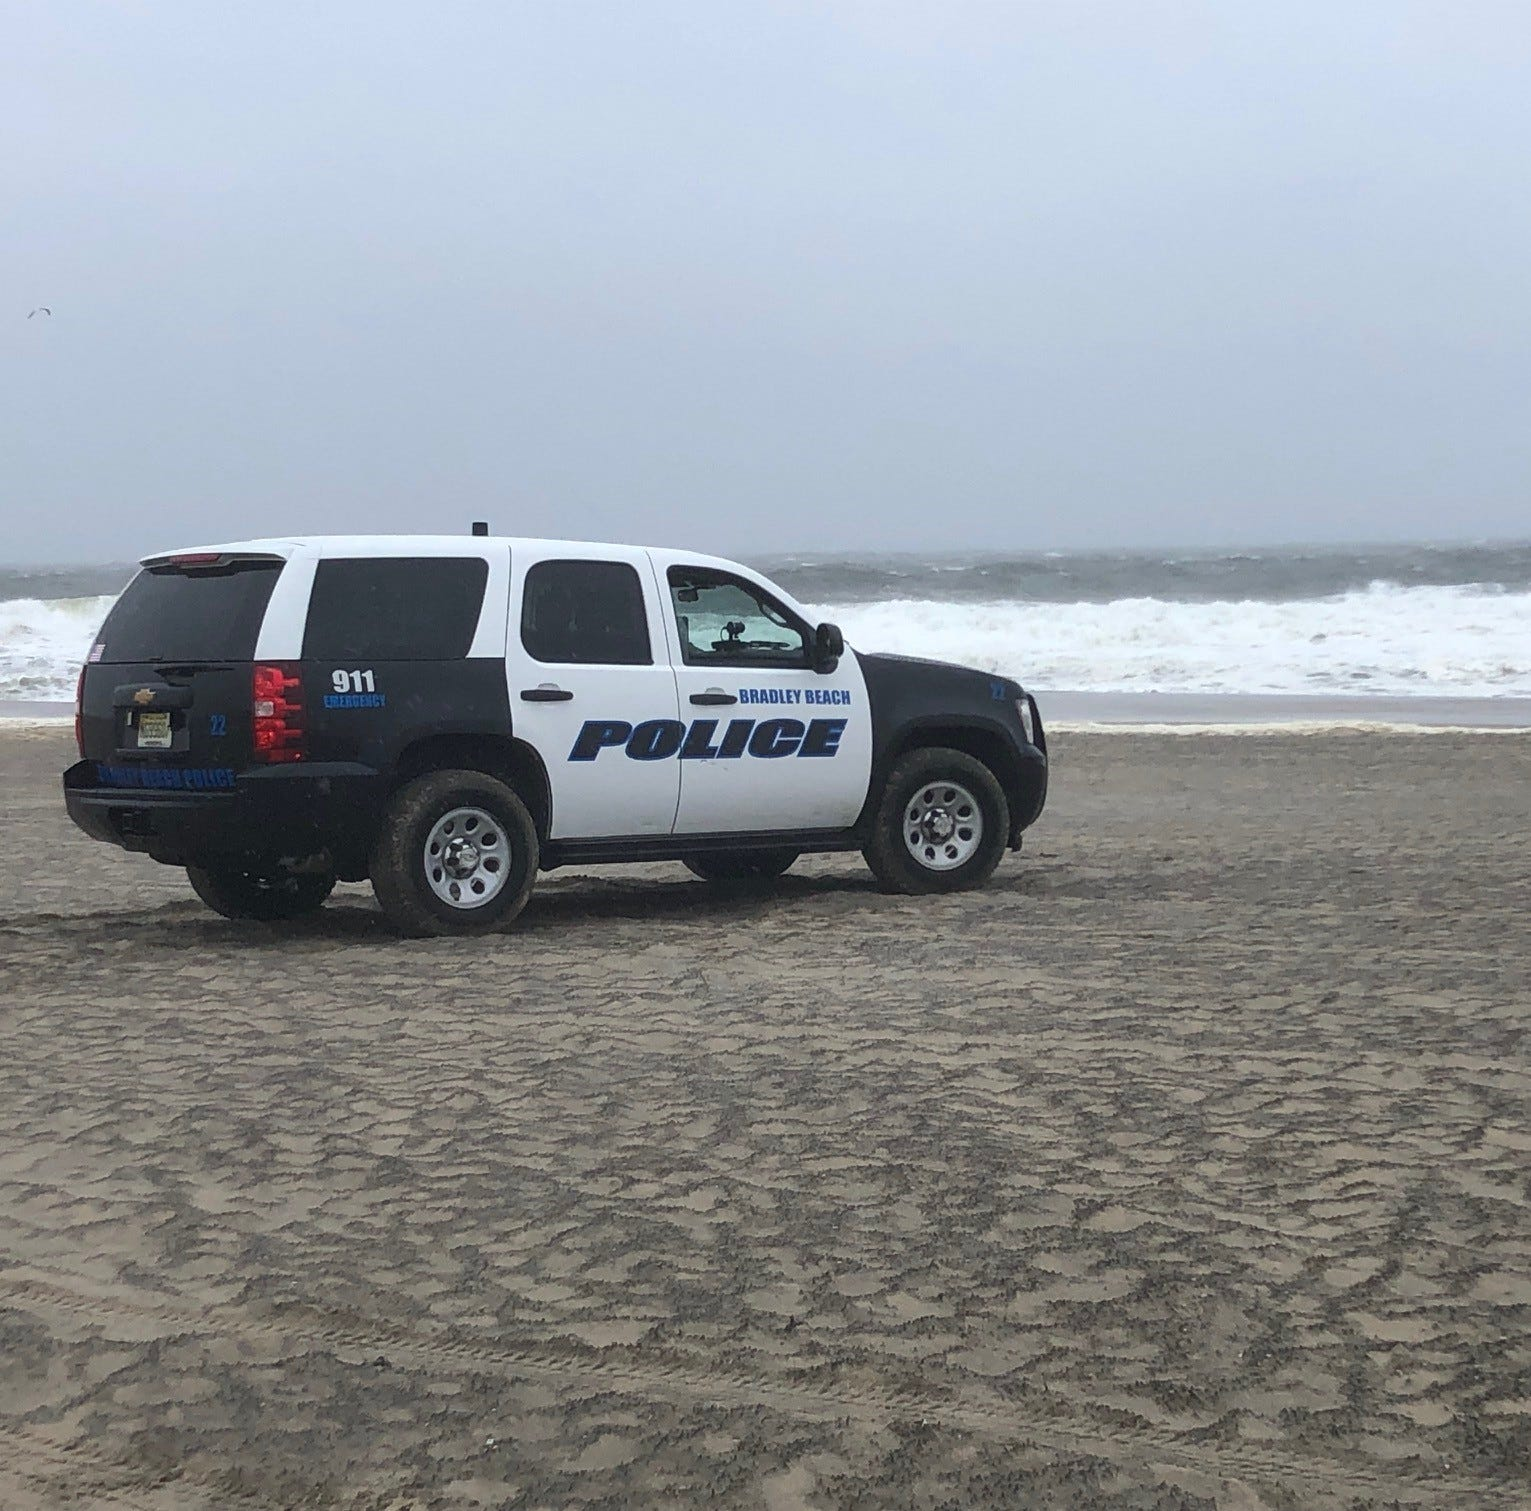 Bradley Beach rescue: Sailboat in distress battling rough seas